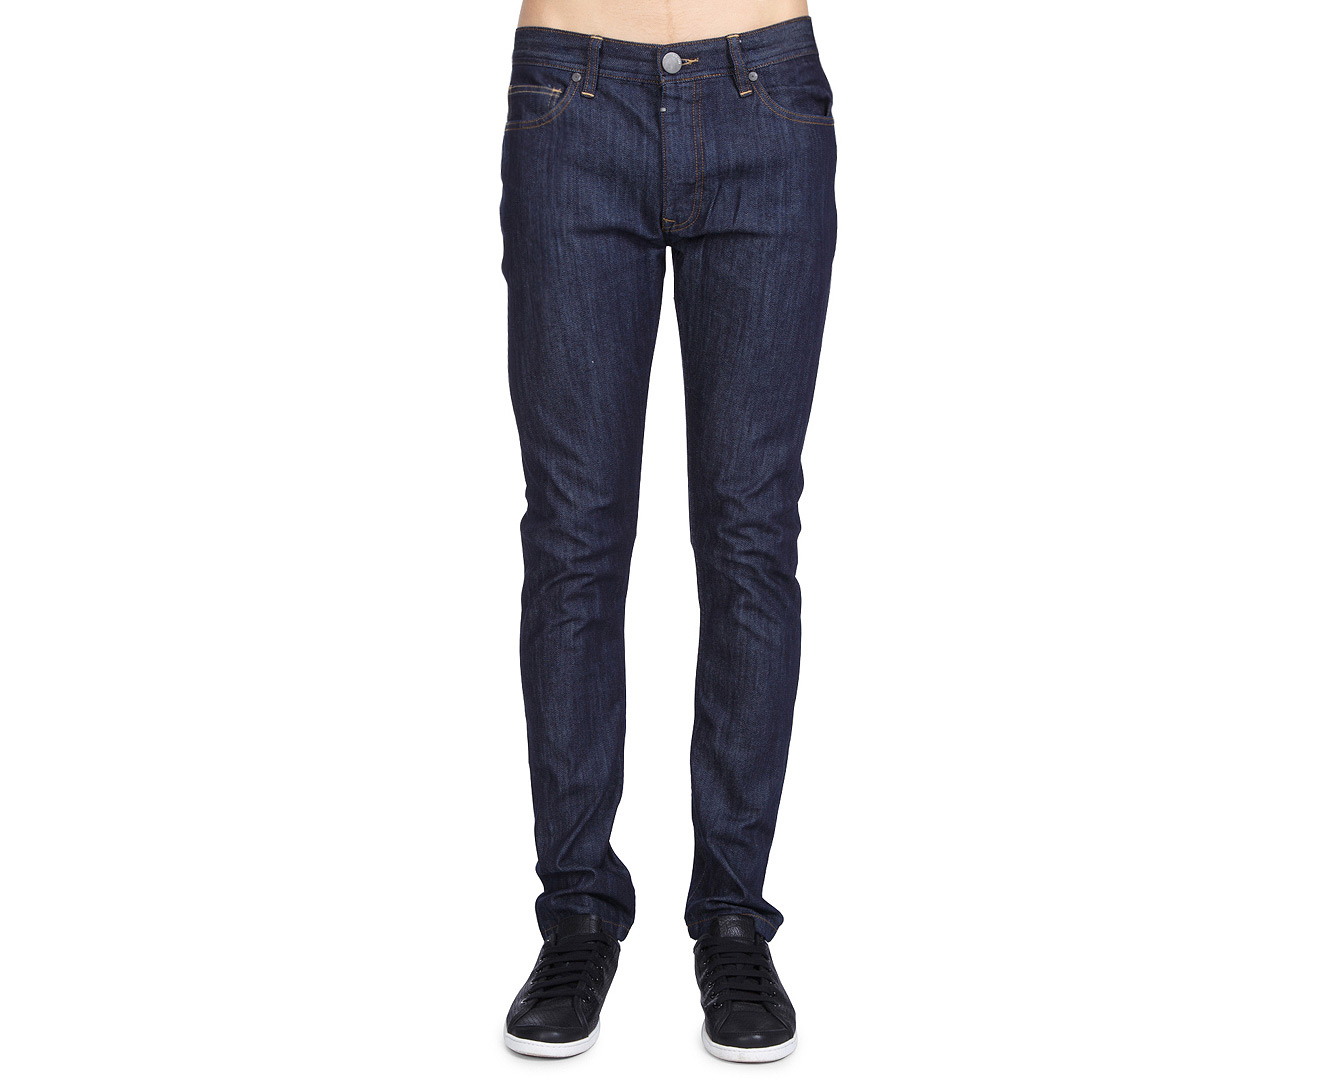 04f4062da51 Buy skinny jog jean. Shop every store on the internet via PricePi.com